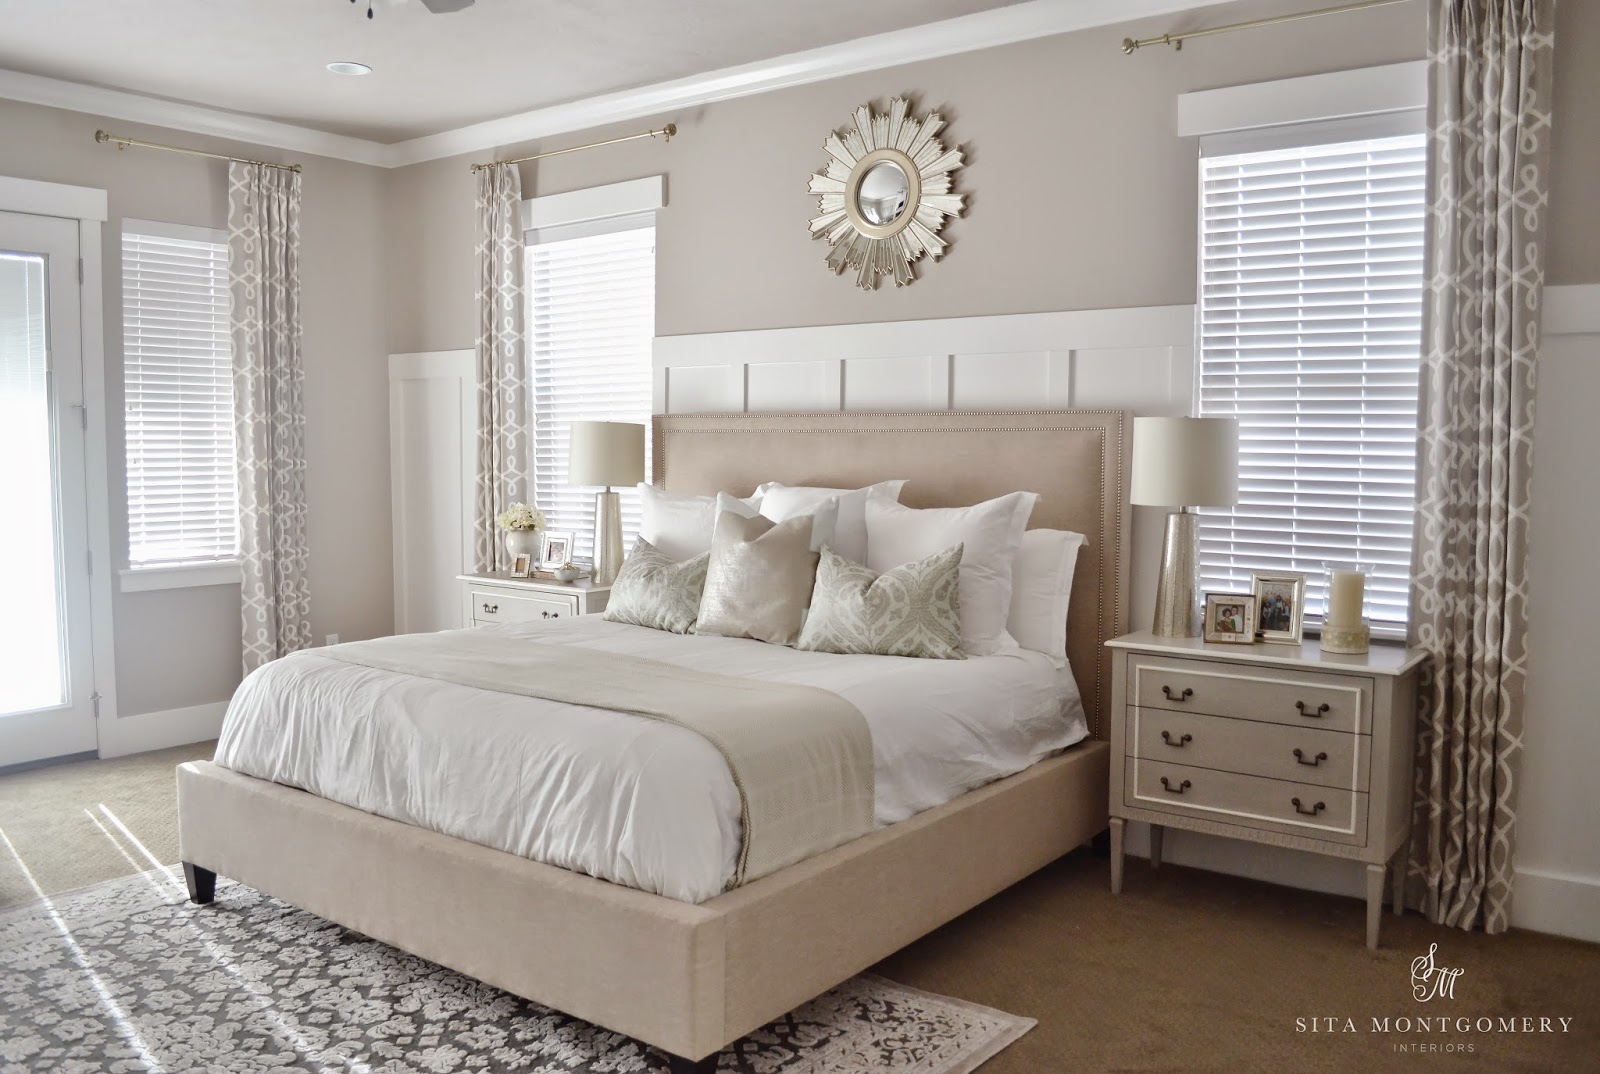 Sita montgomery interiors my 2015 home updates year in for New master bedroom ideas